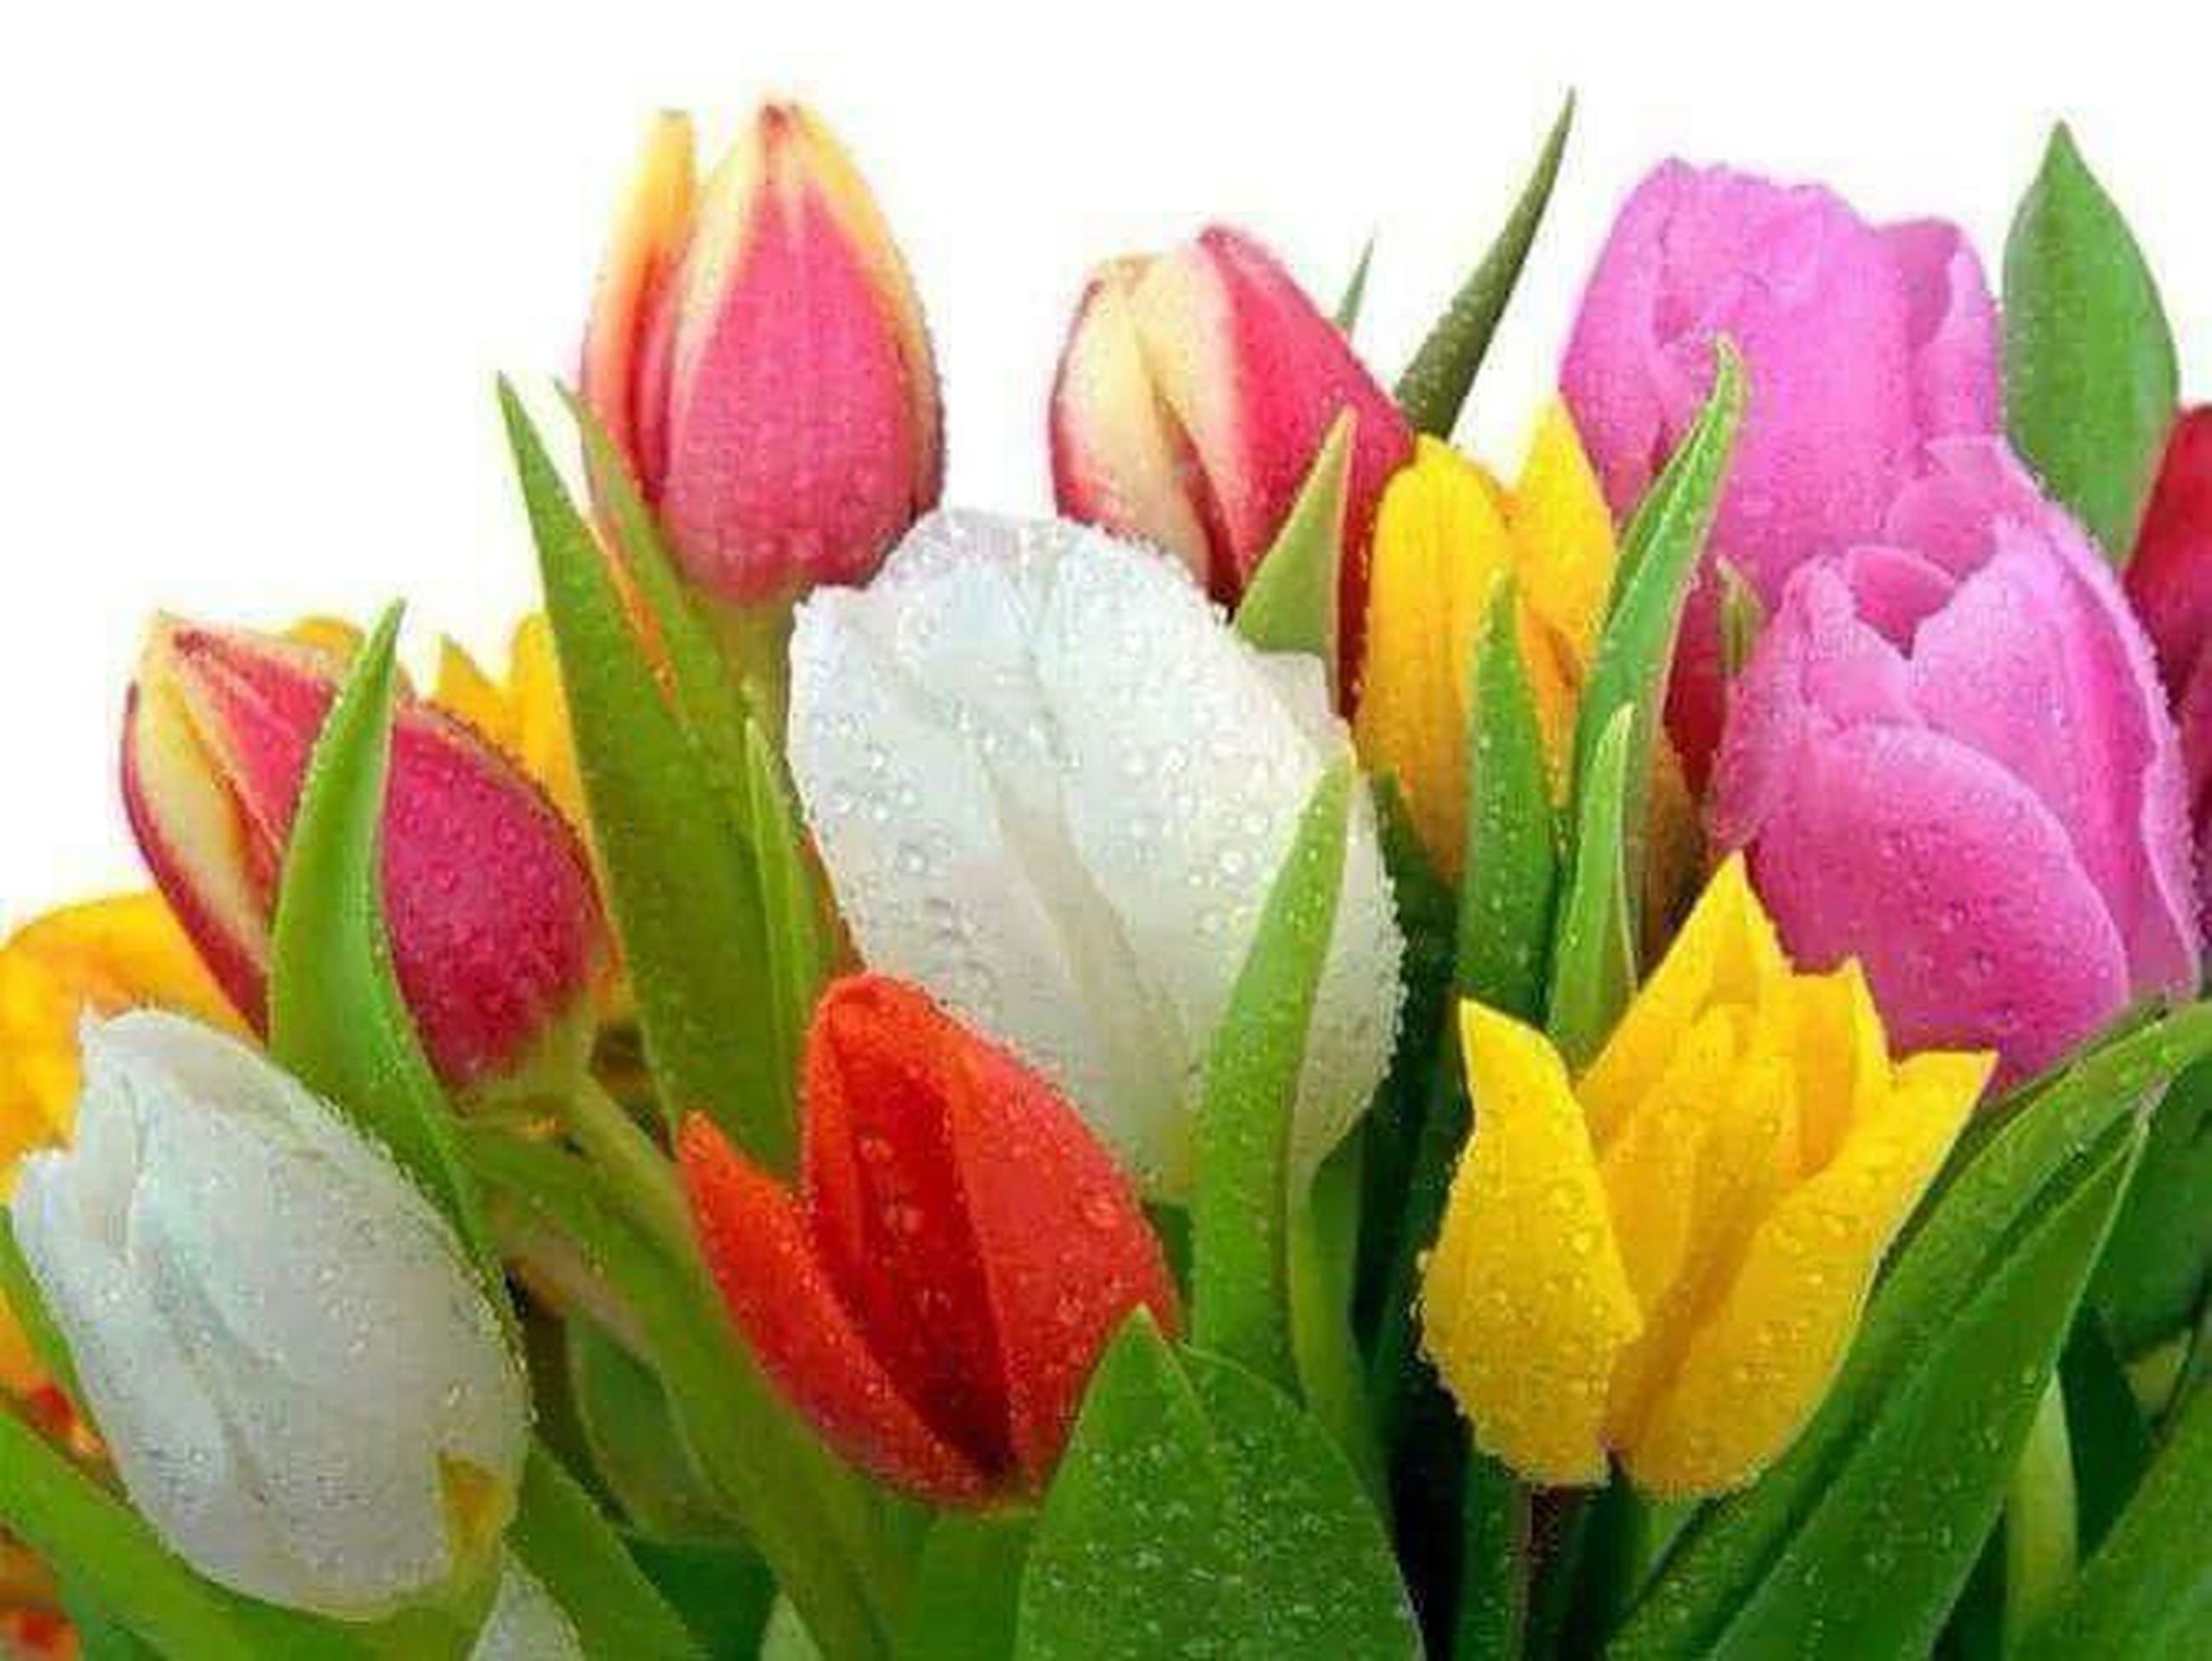 flower, freshness, petal, fragility, flower head, beauty in nature, growth, drop, leaf, close-up, plant, nature, blooming, wet, water, red, in bloom, tulip, blossom, no people